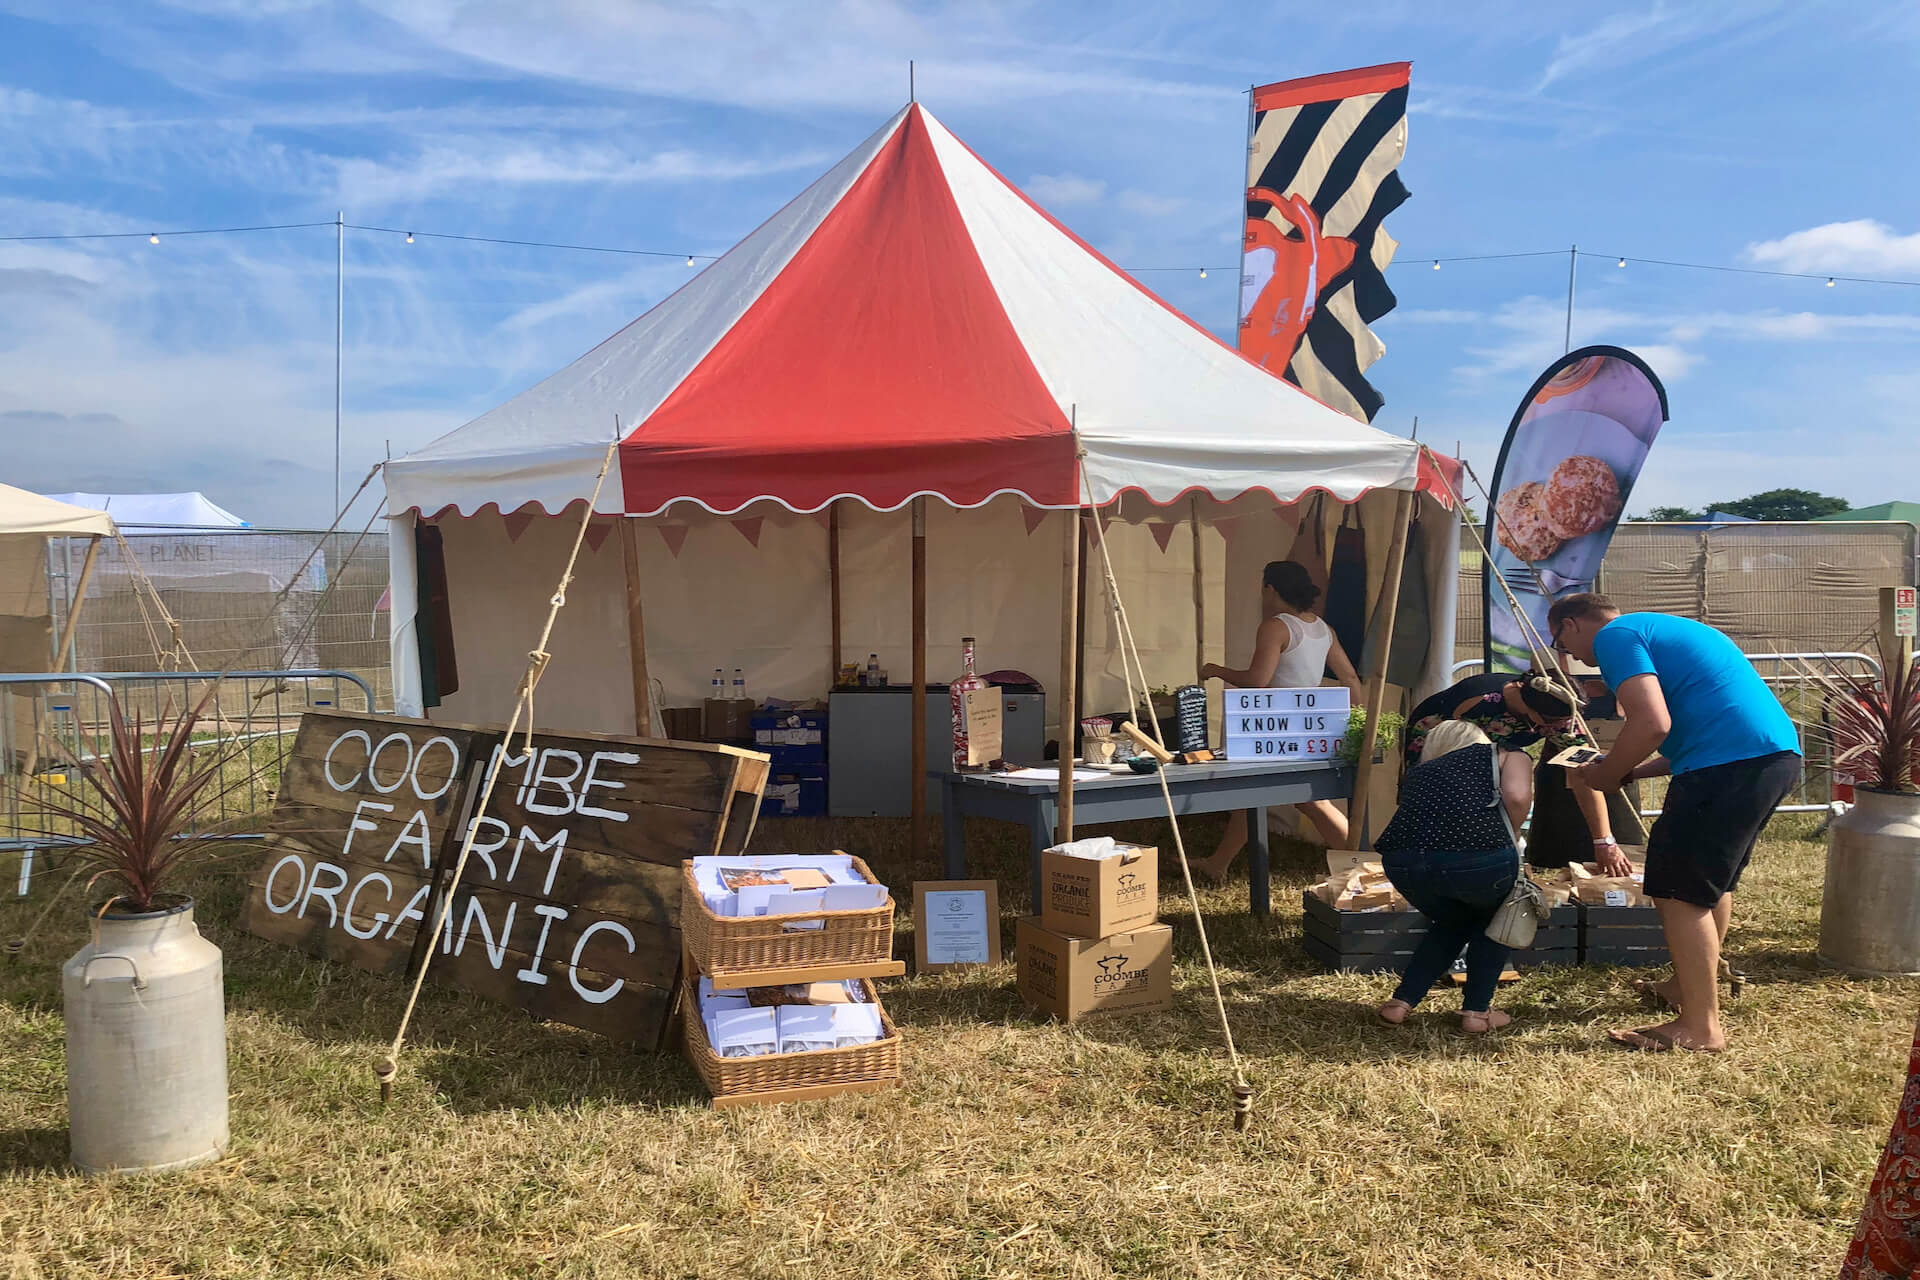 Festival stall hire